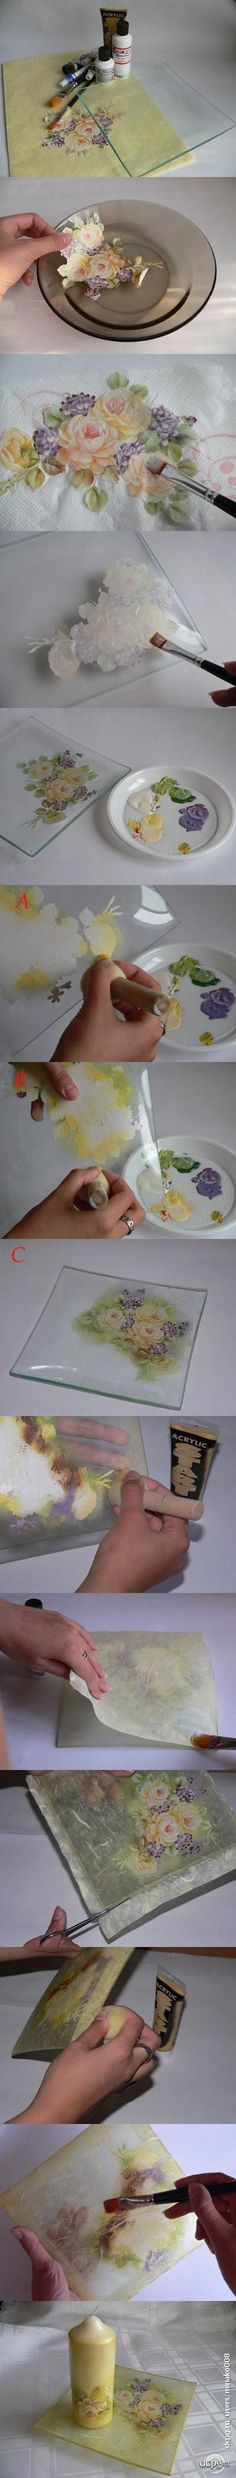 http://dcpg.ru/mclasses/984/                                                                                                                                                      More #decoupage